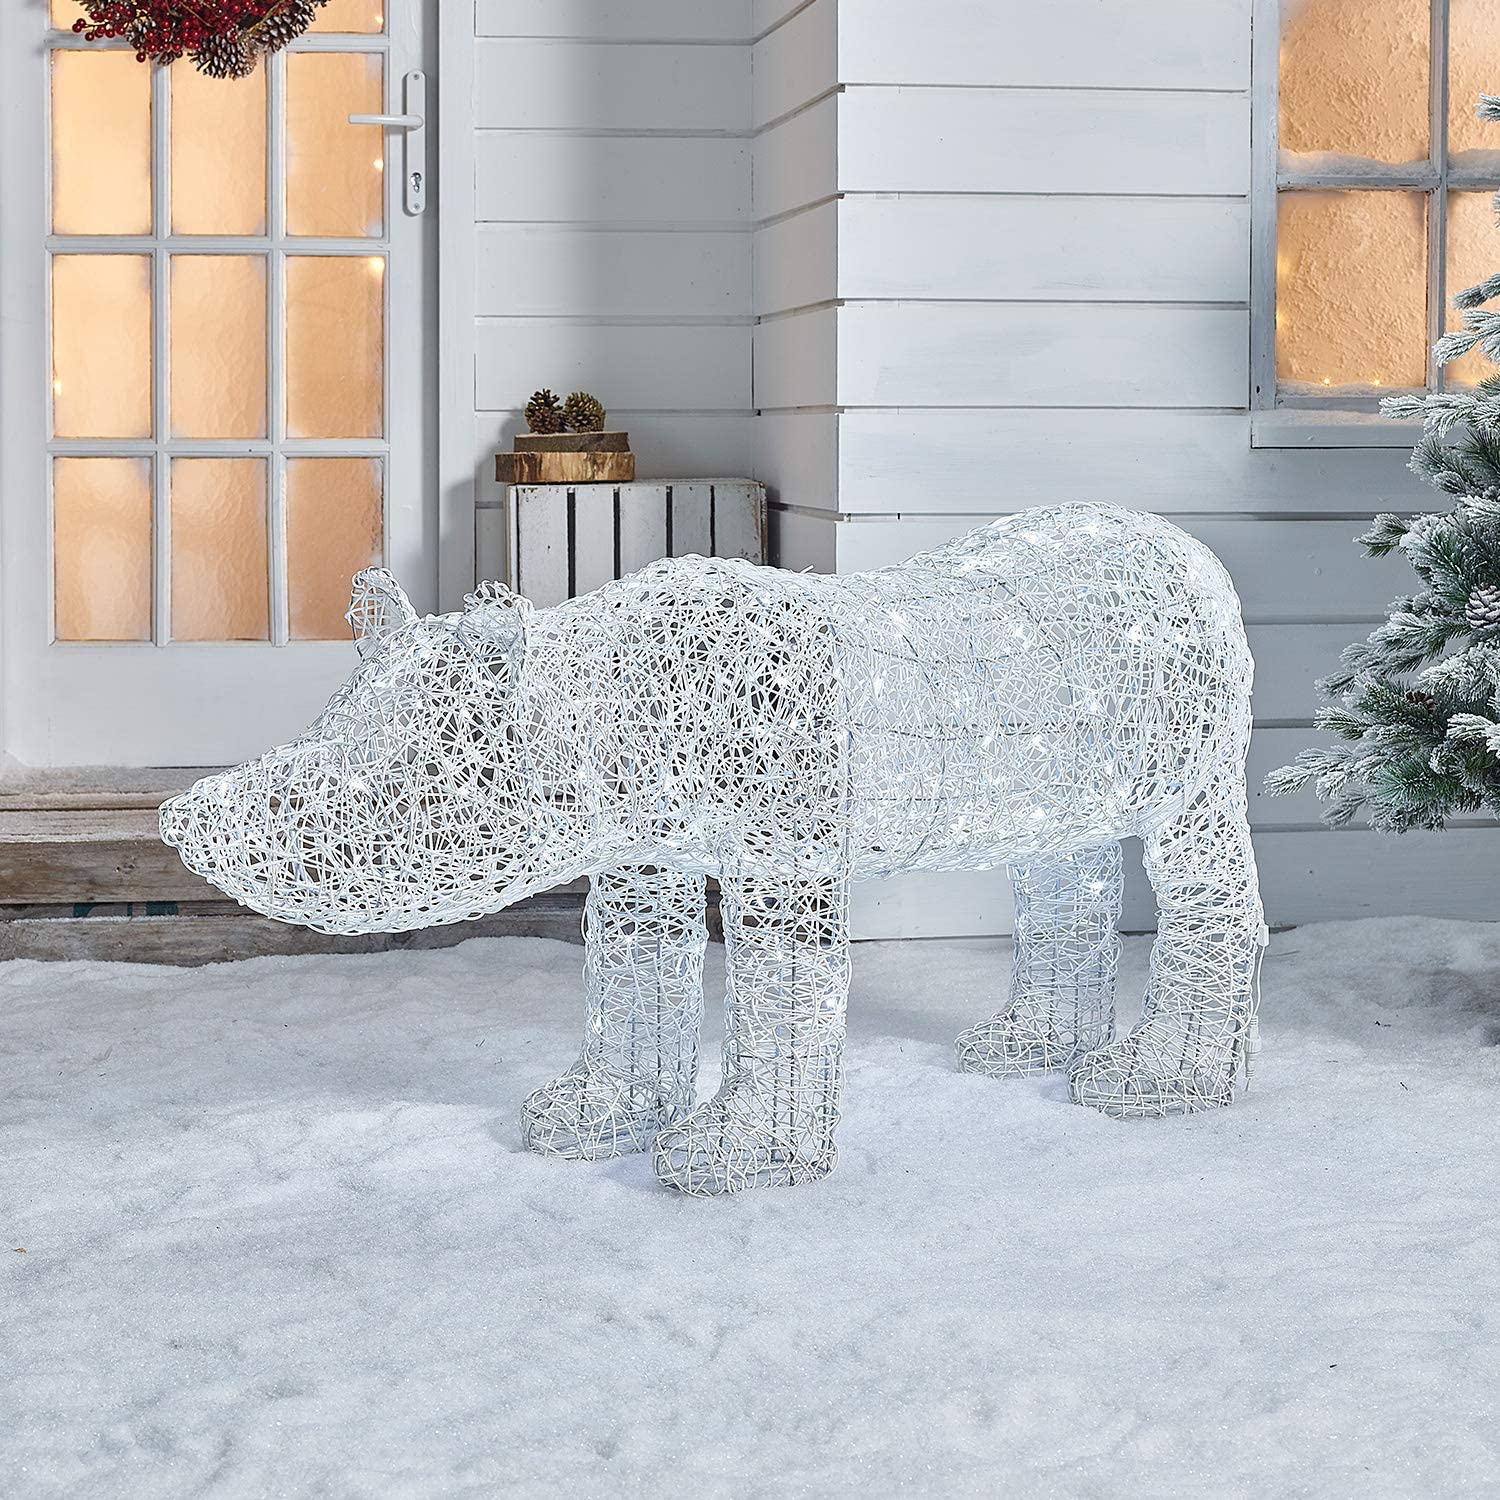 Xmas White with 120 Multi-Functional Timed Warm White Energy Efficient LED Lights 120cm Battery or Mains Operated Outdoor PVC Rattan Polar Bear Christmas Figure The Winter Workshop